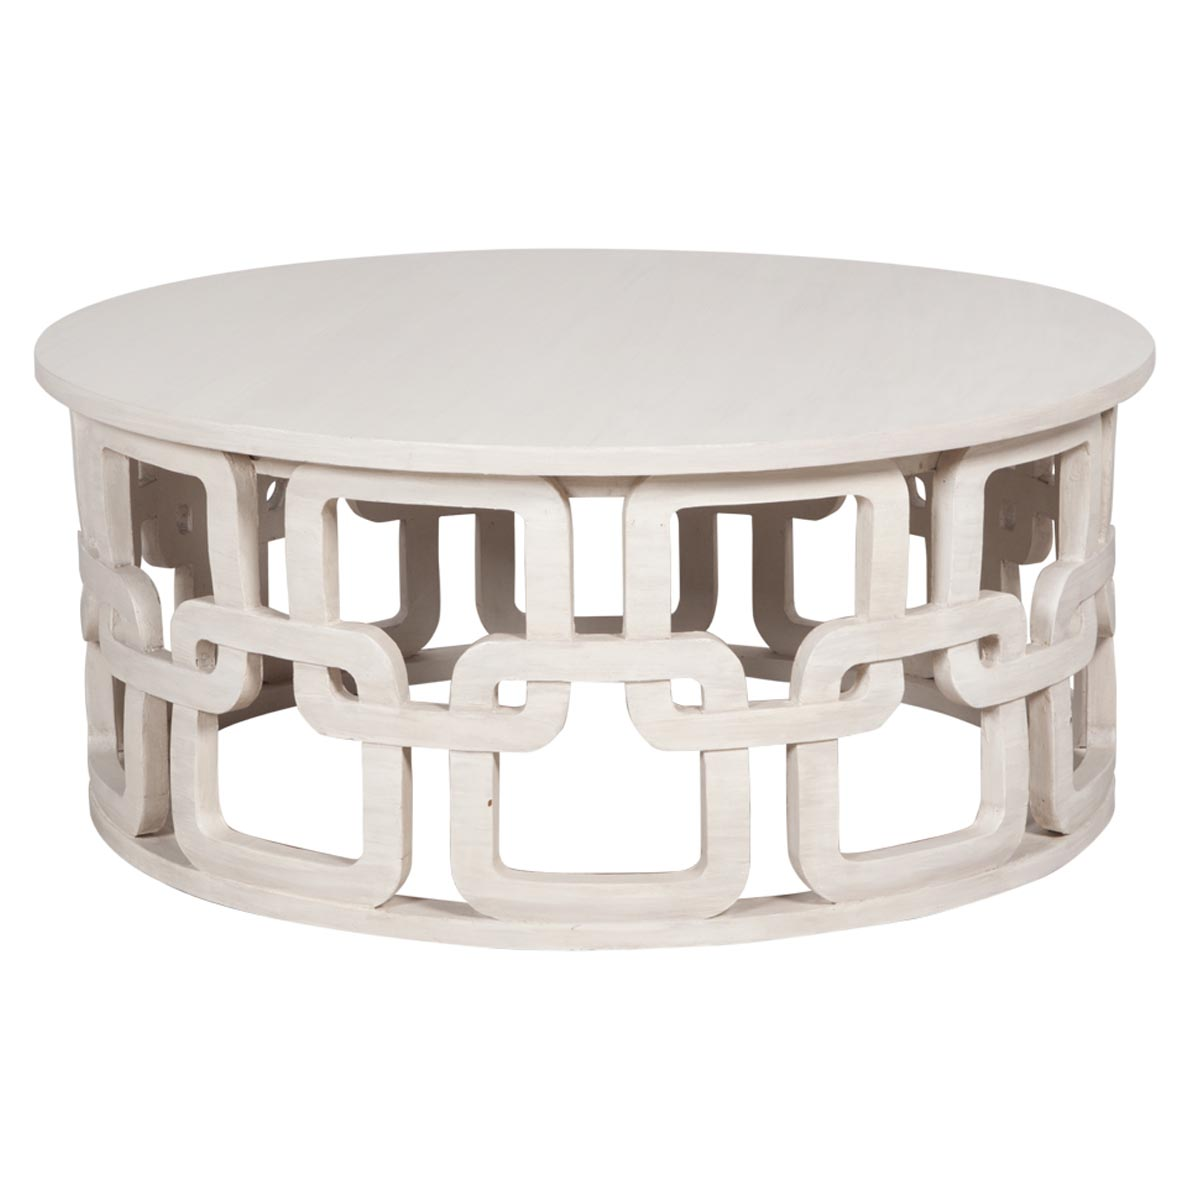 White Circle Coffee Table